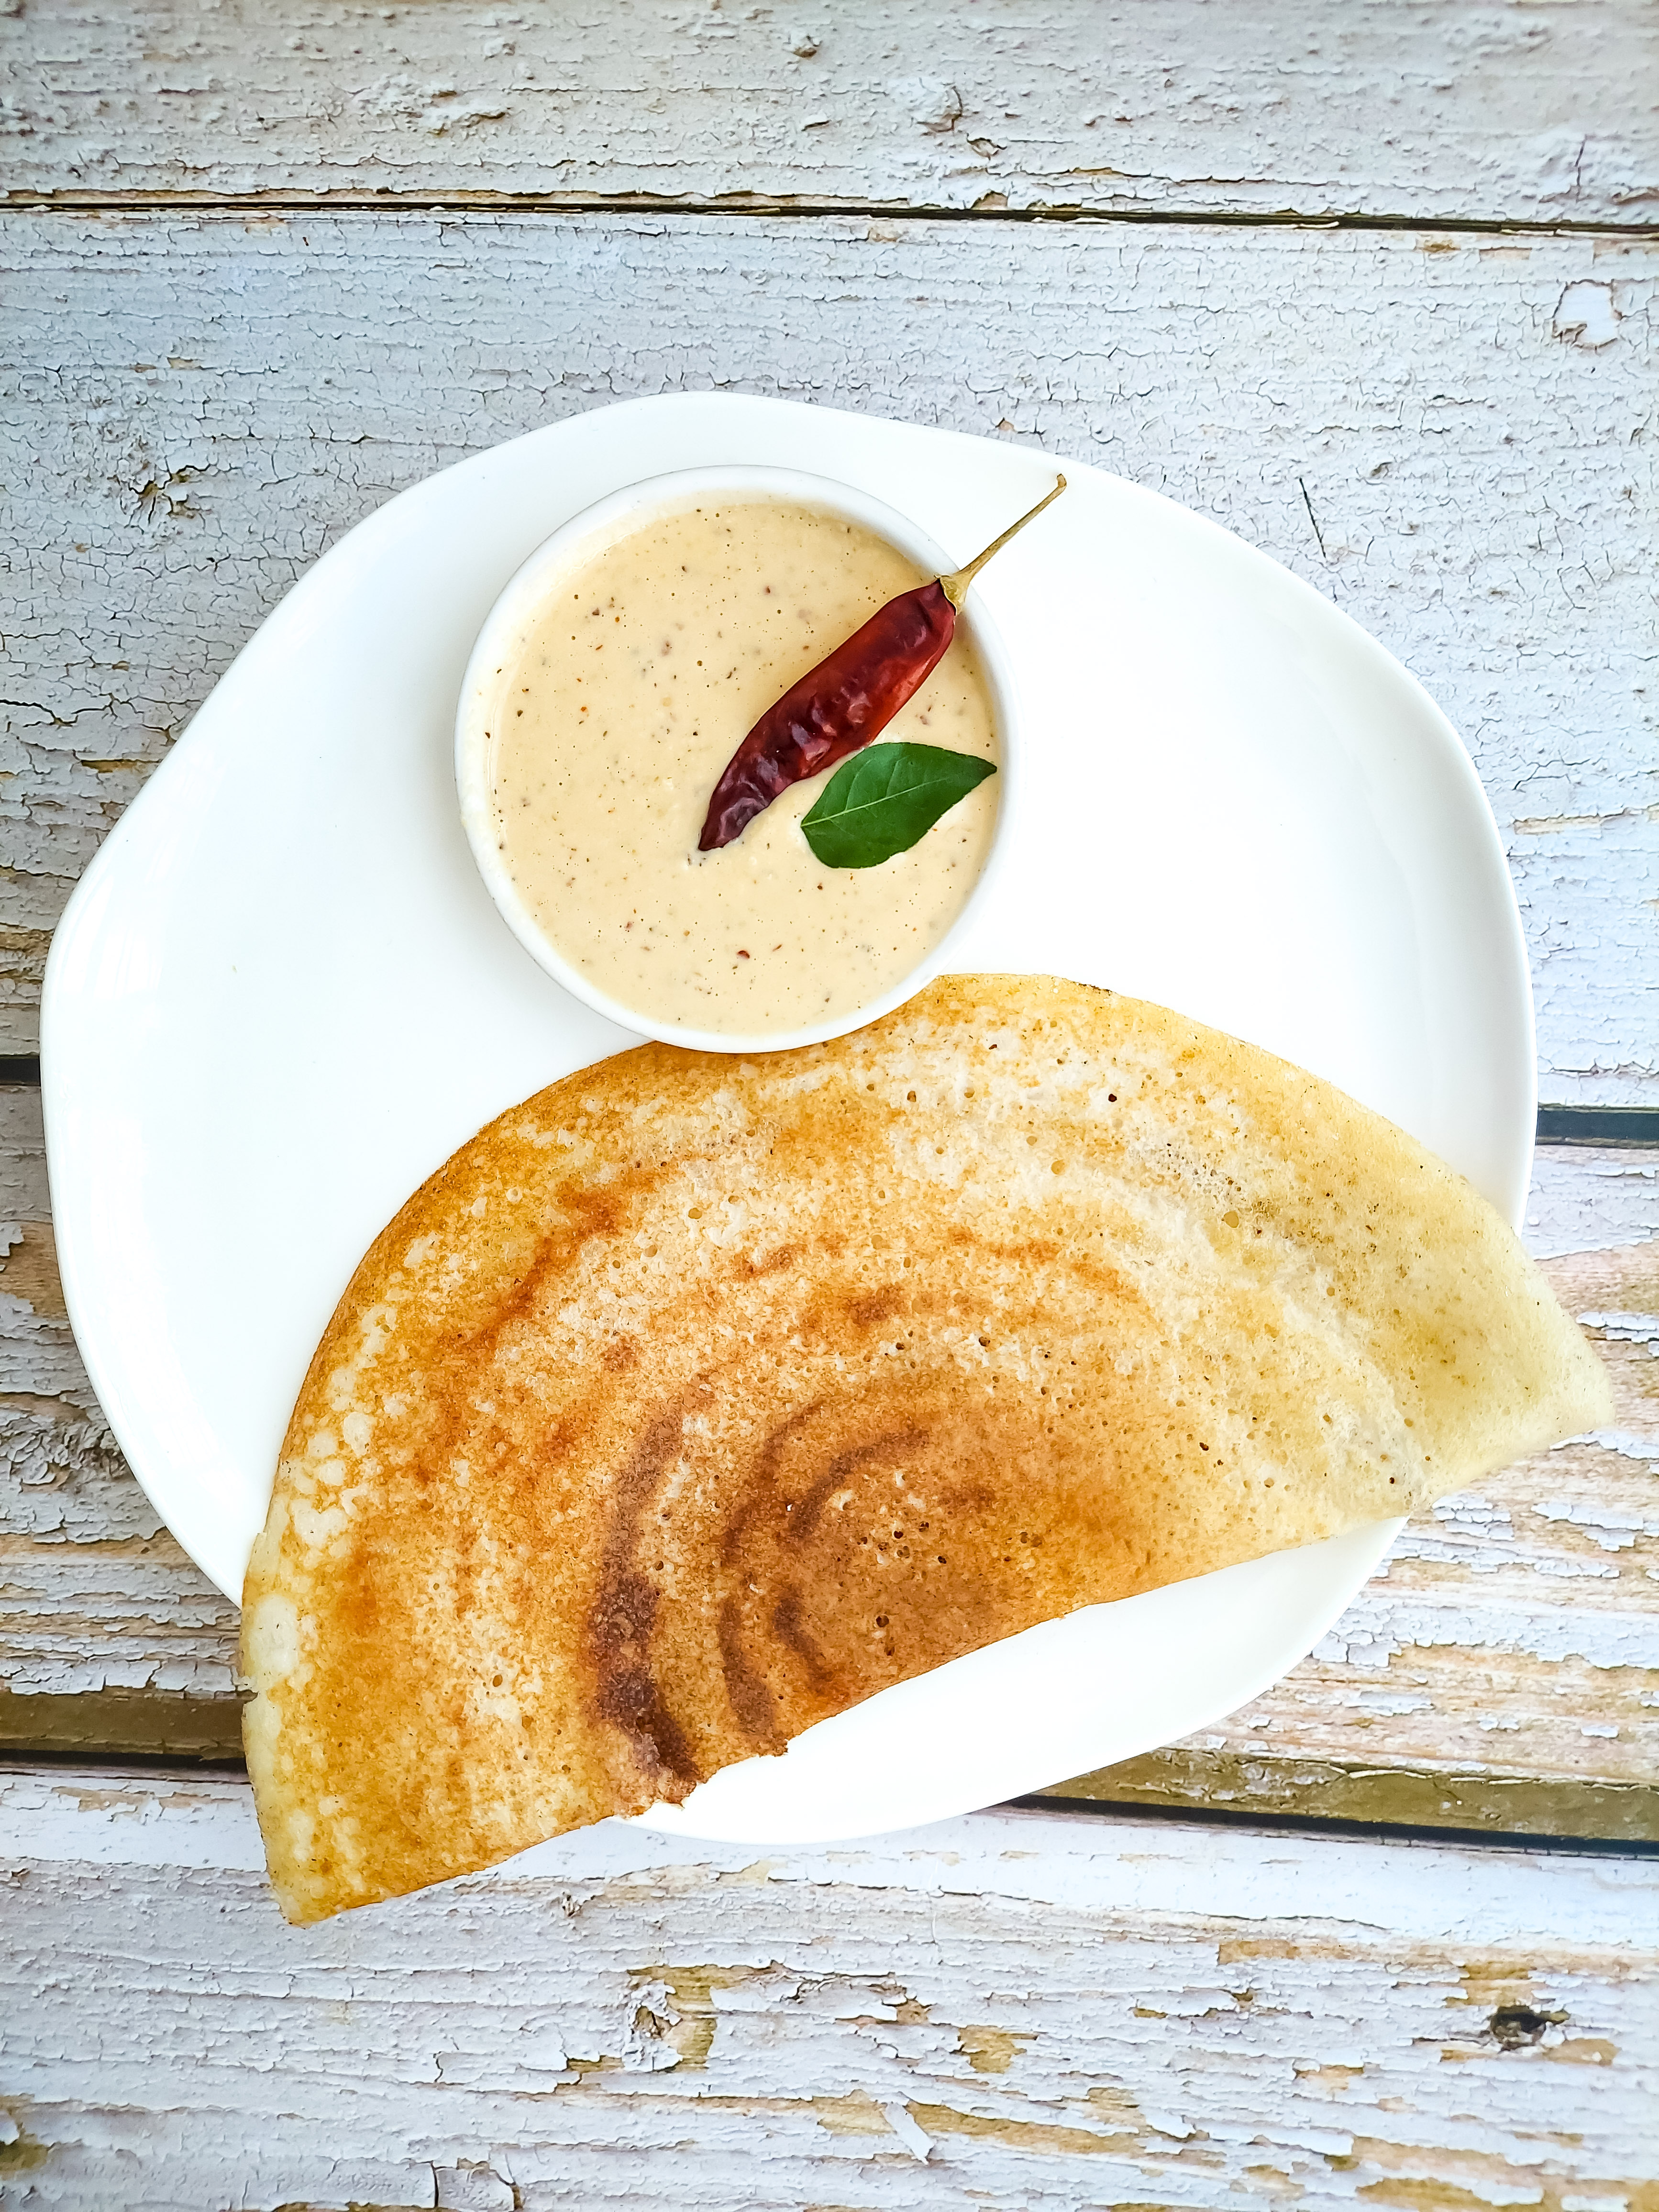 My Dosai recipe and a little story